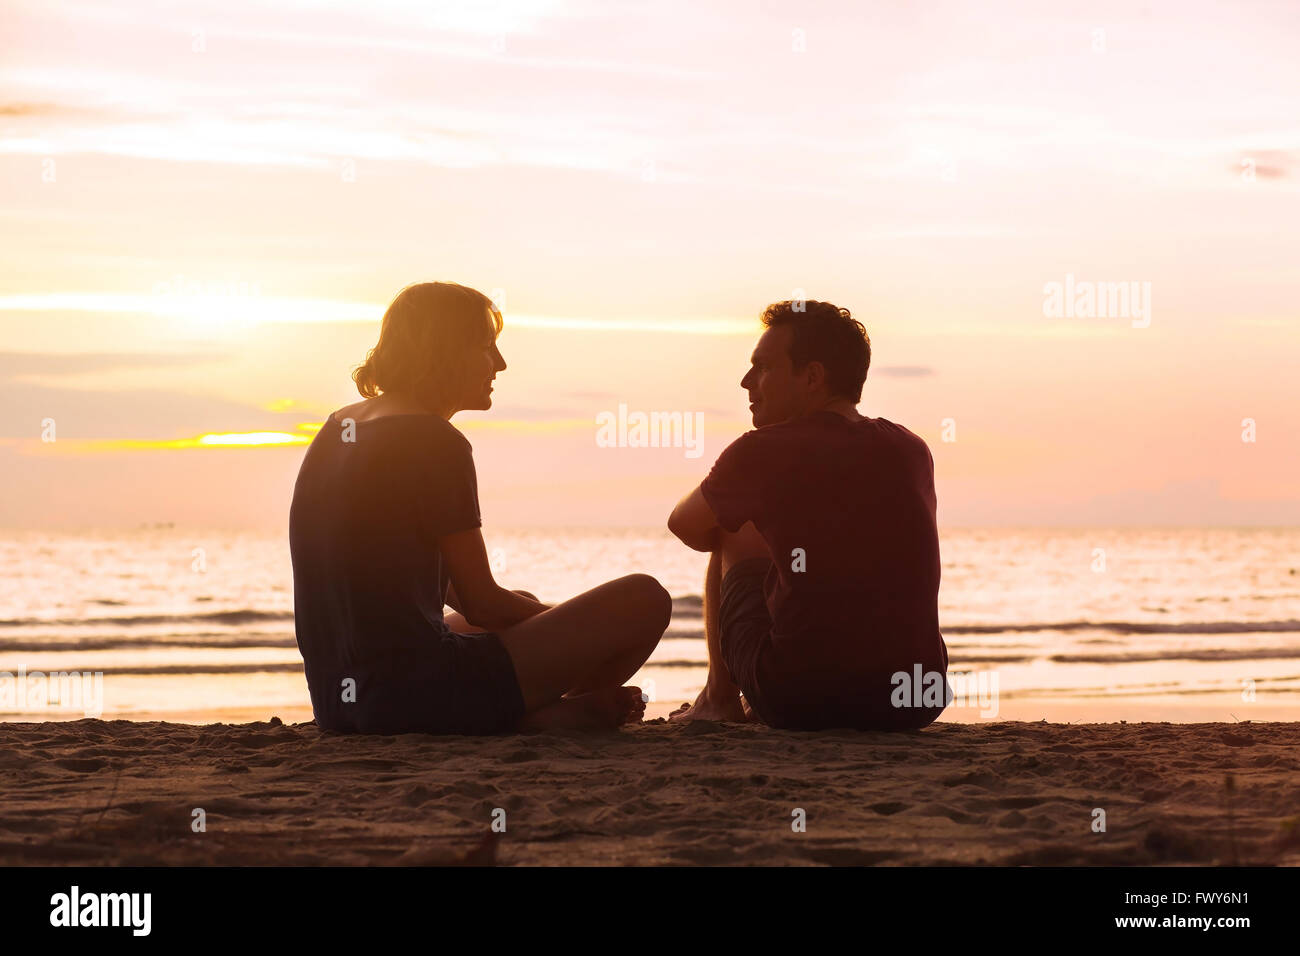 man and woman on the beach at sunset, young couple talking near the sea, dating or friendship concept - Stock Image